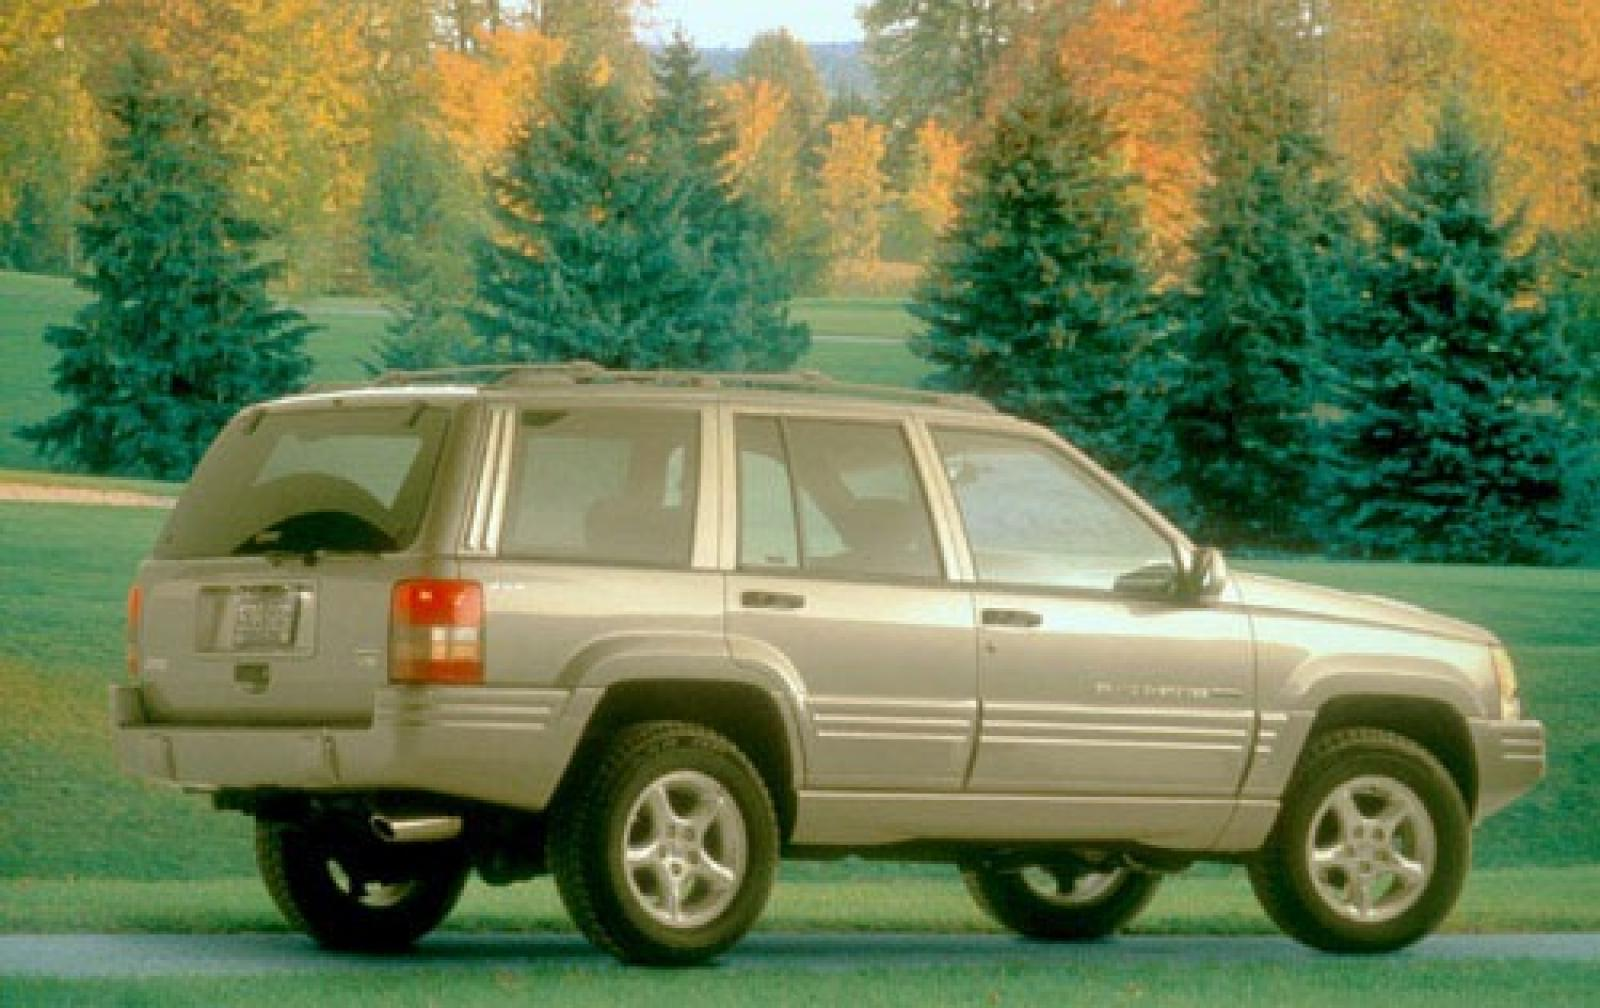 1998 jeep grand cherokee information and photos zombiedrive. Black Bedroom Furniture Sets. Home Design Ideas